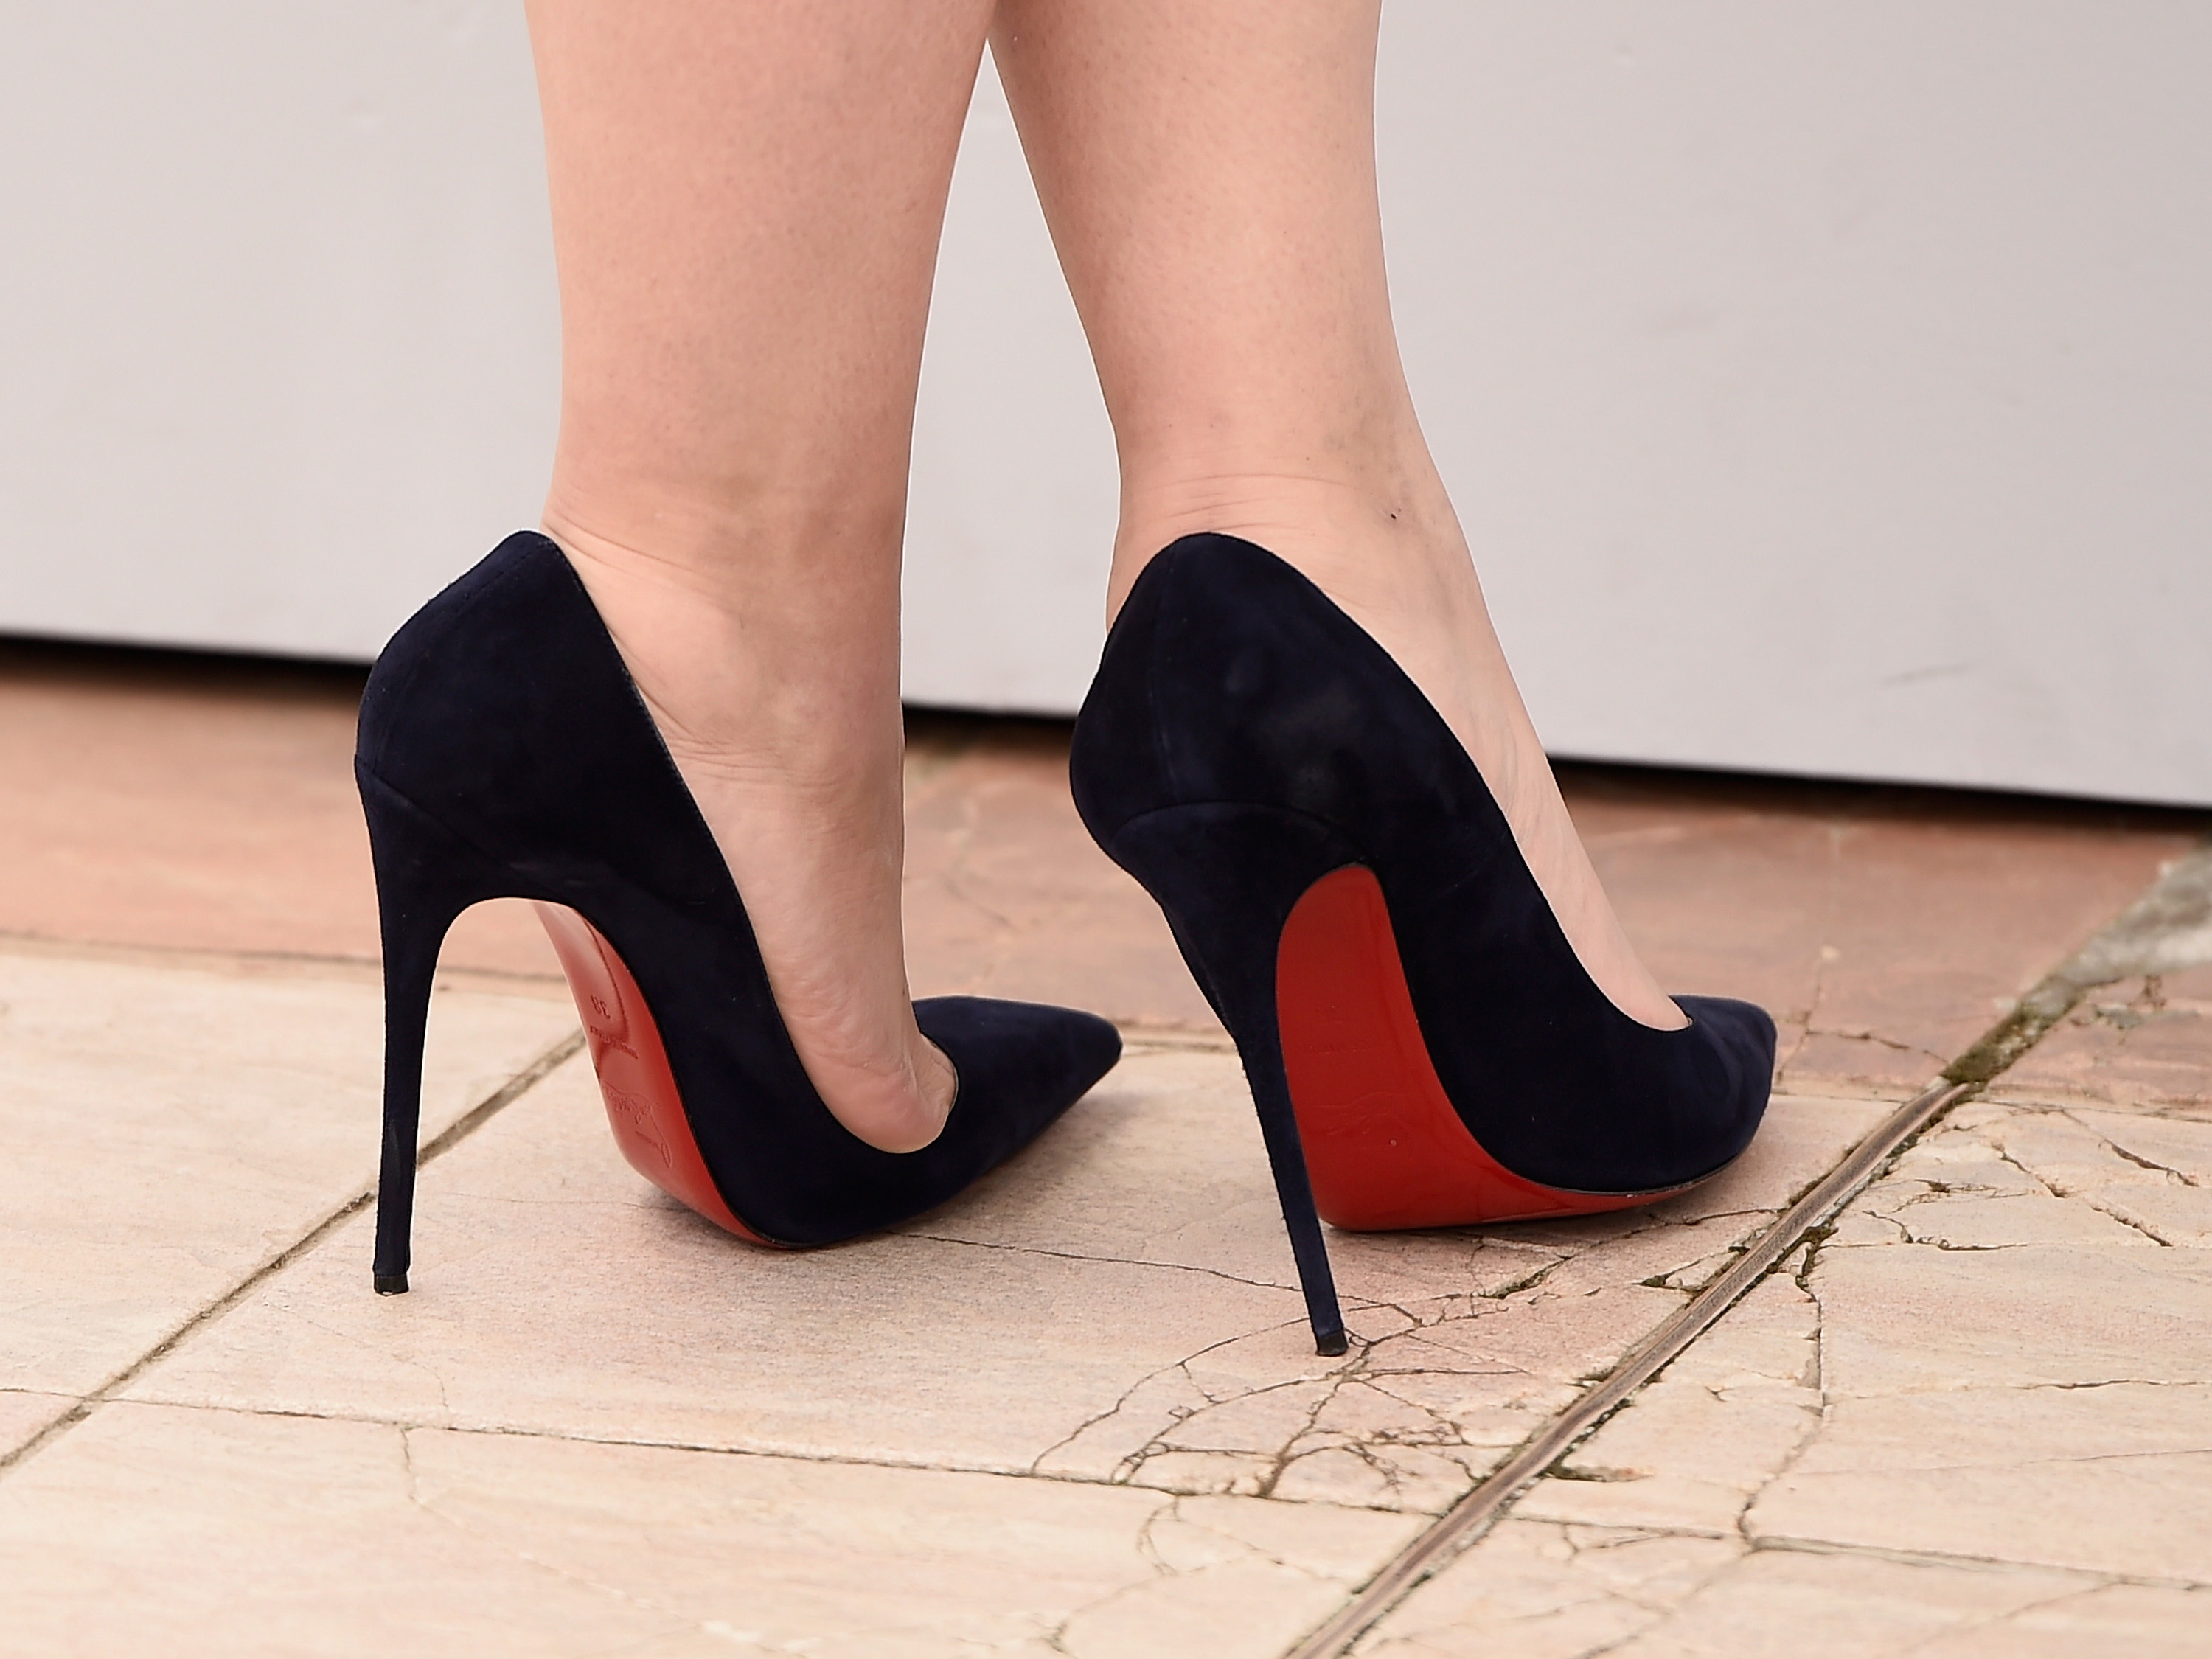 How to high wear heels photo